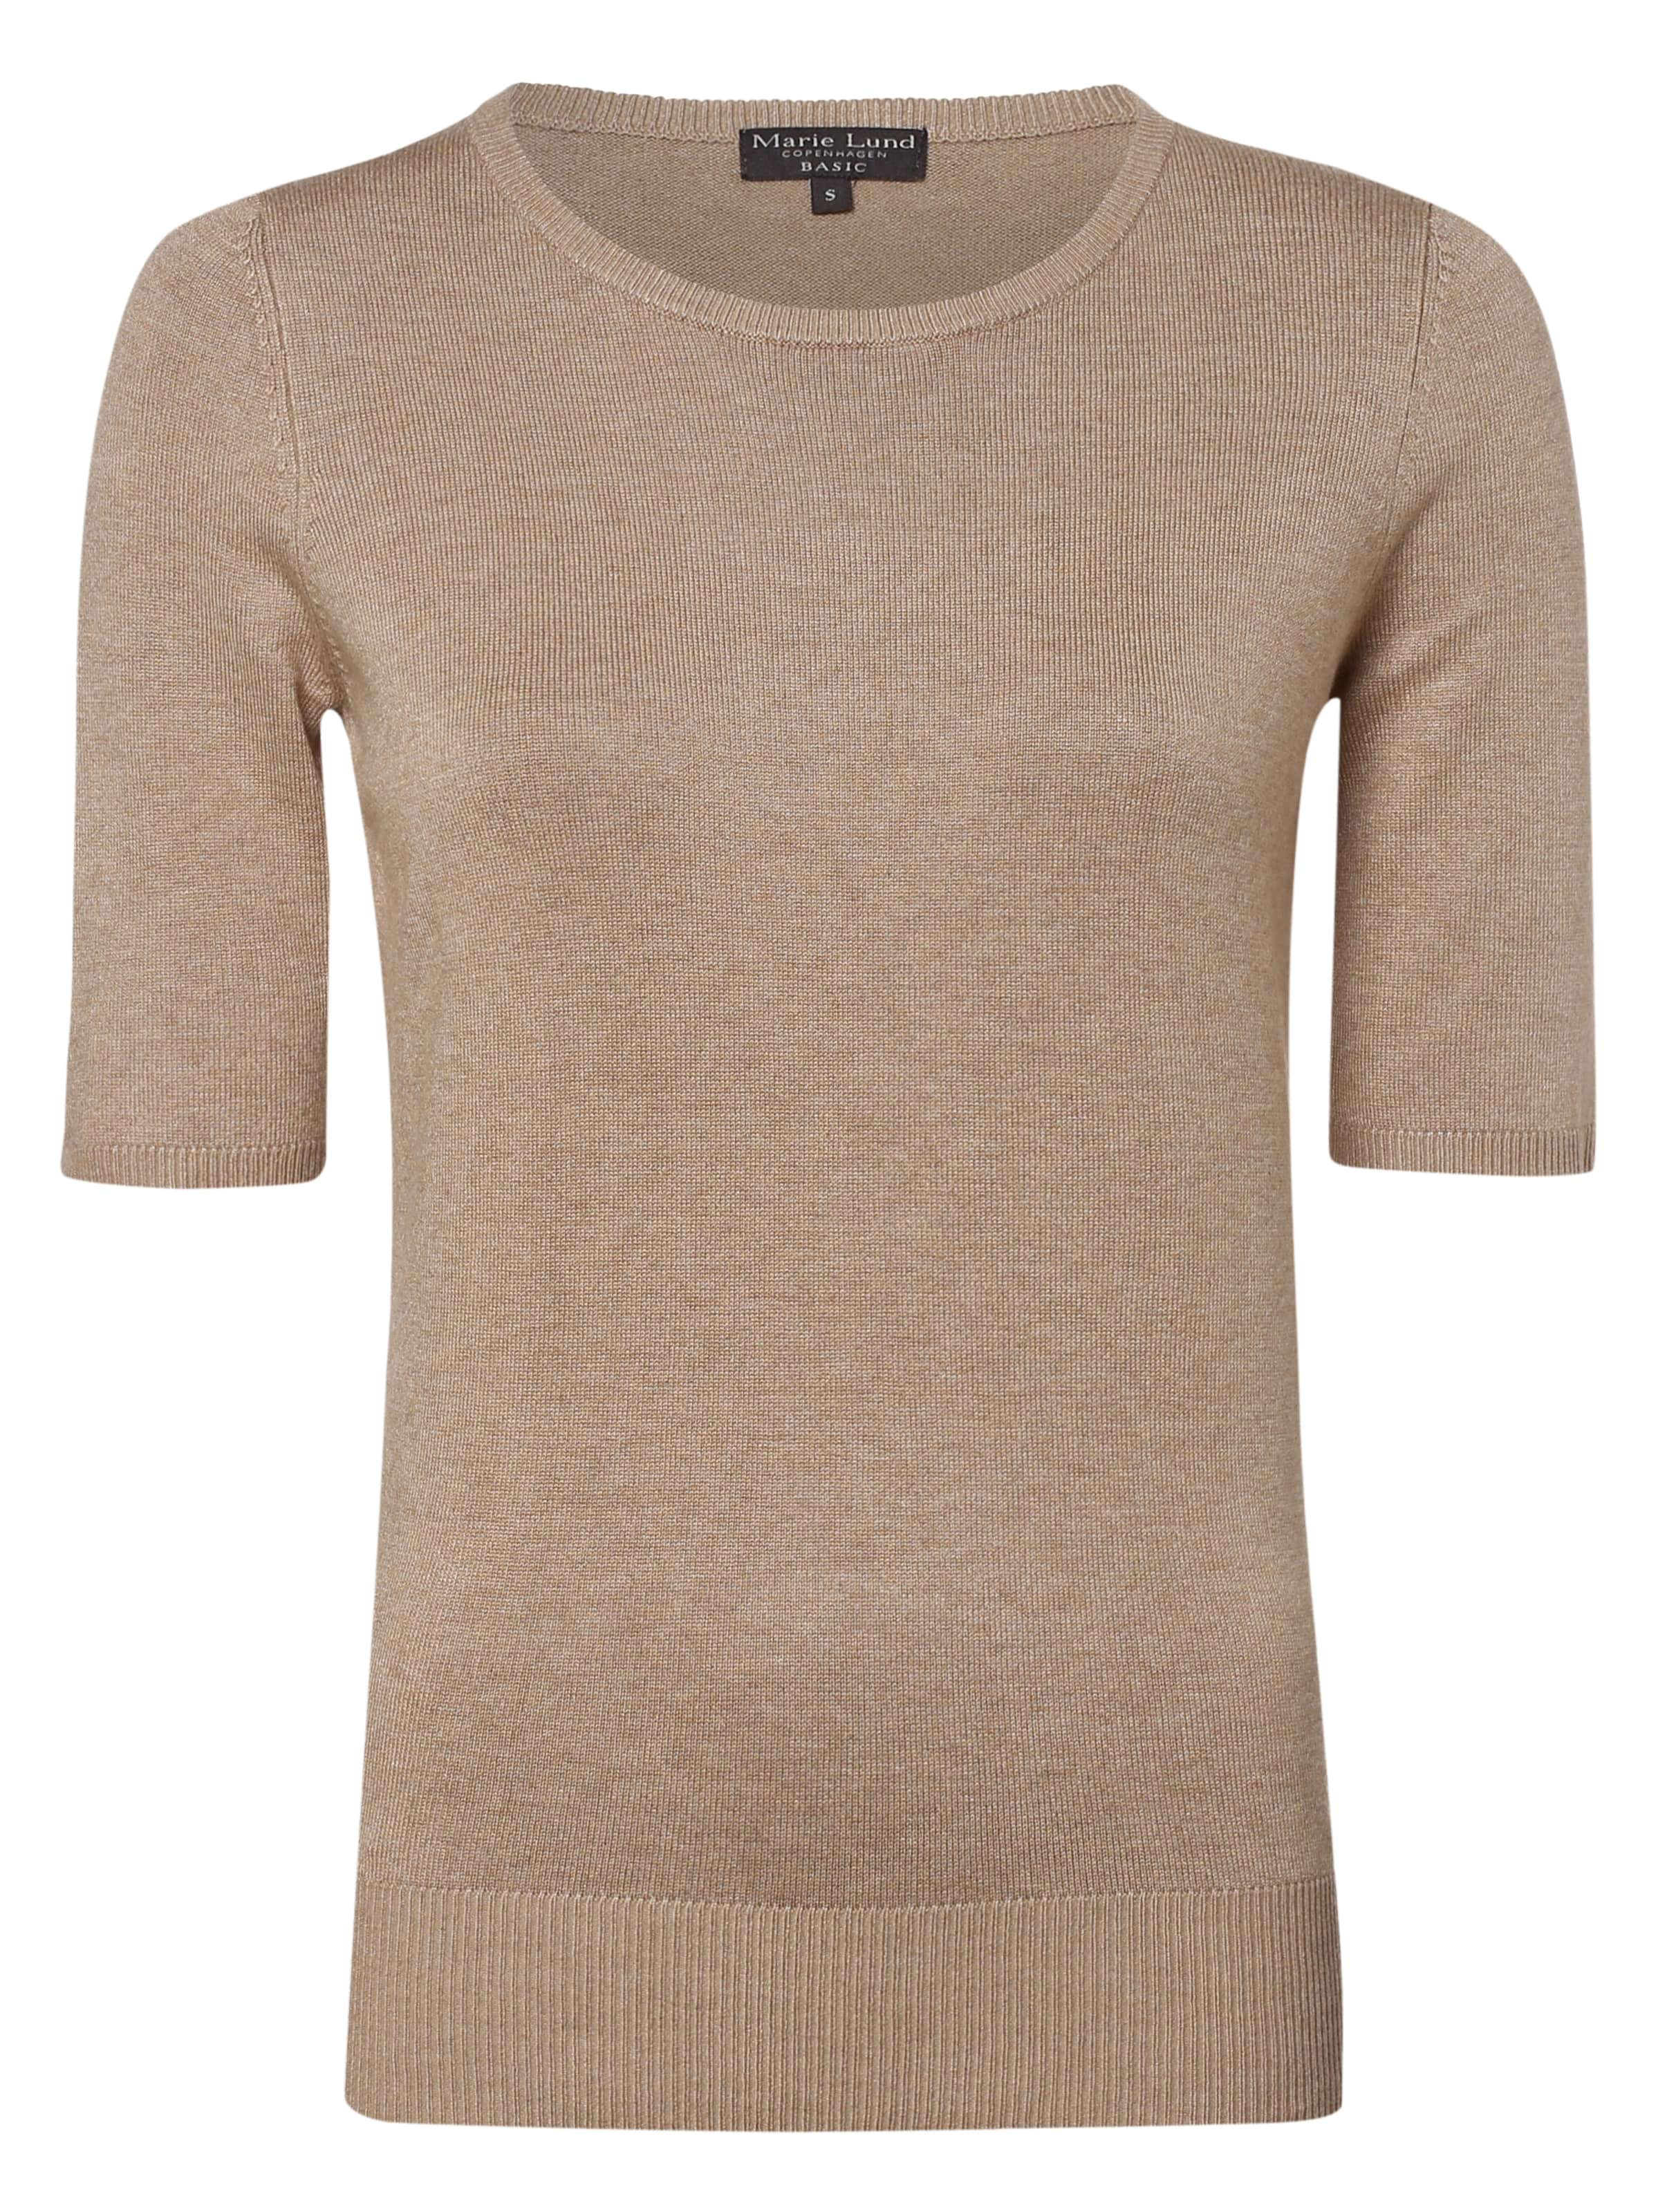 Marie Marie Lund Lund In Pullover Taupe Ybymf7gIv6